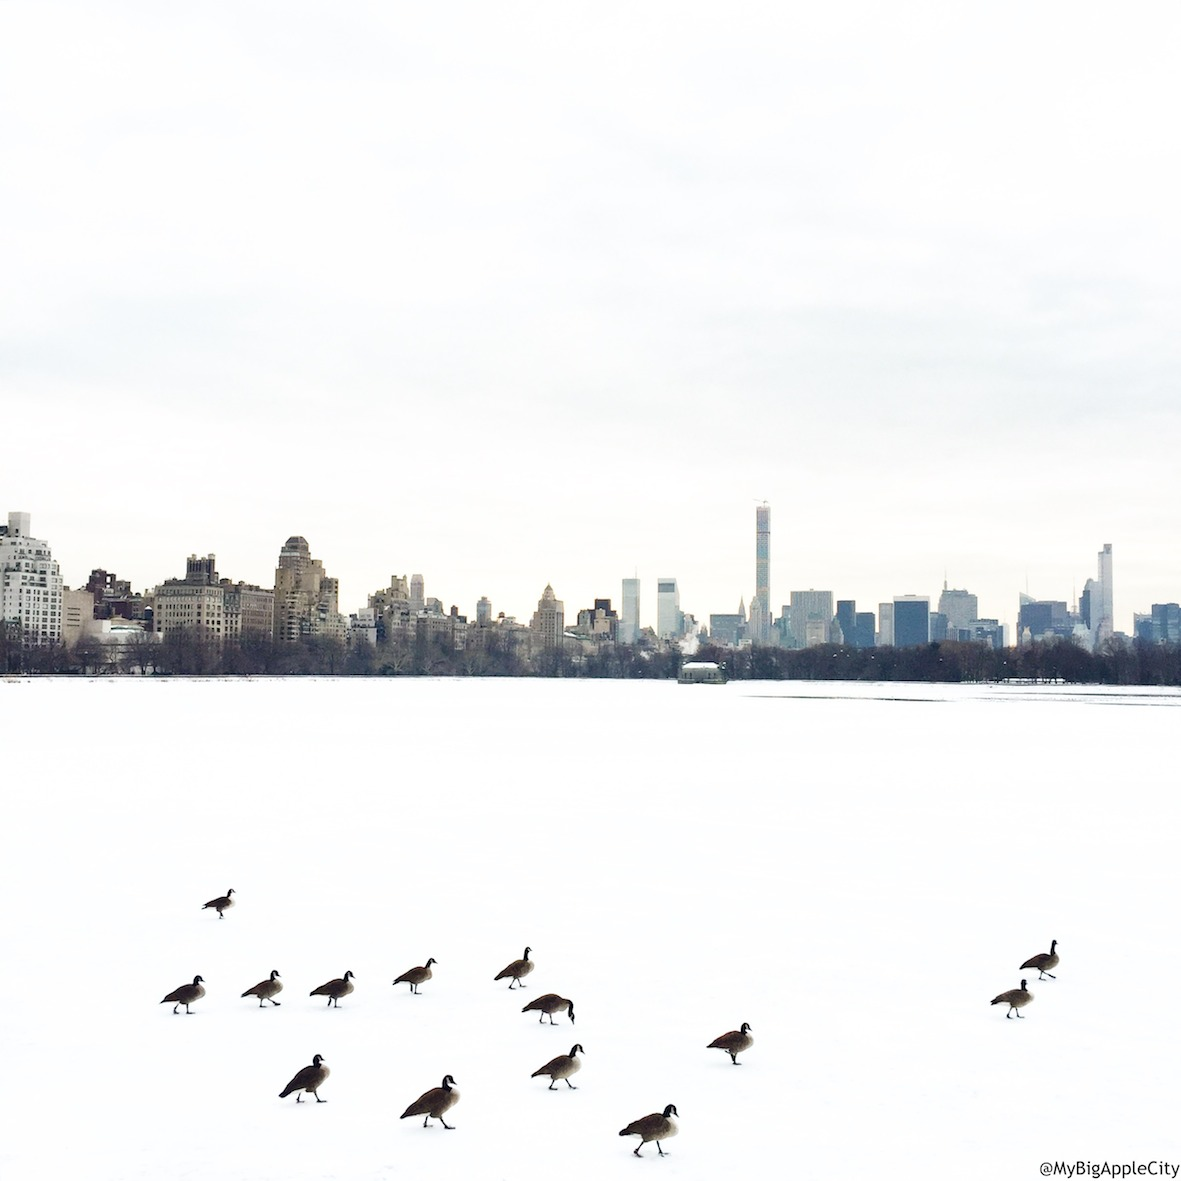 MyBigAppleCity-new-york-blog-travel-centralpark